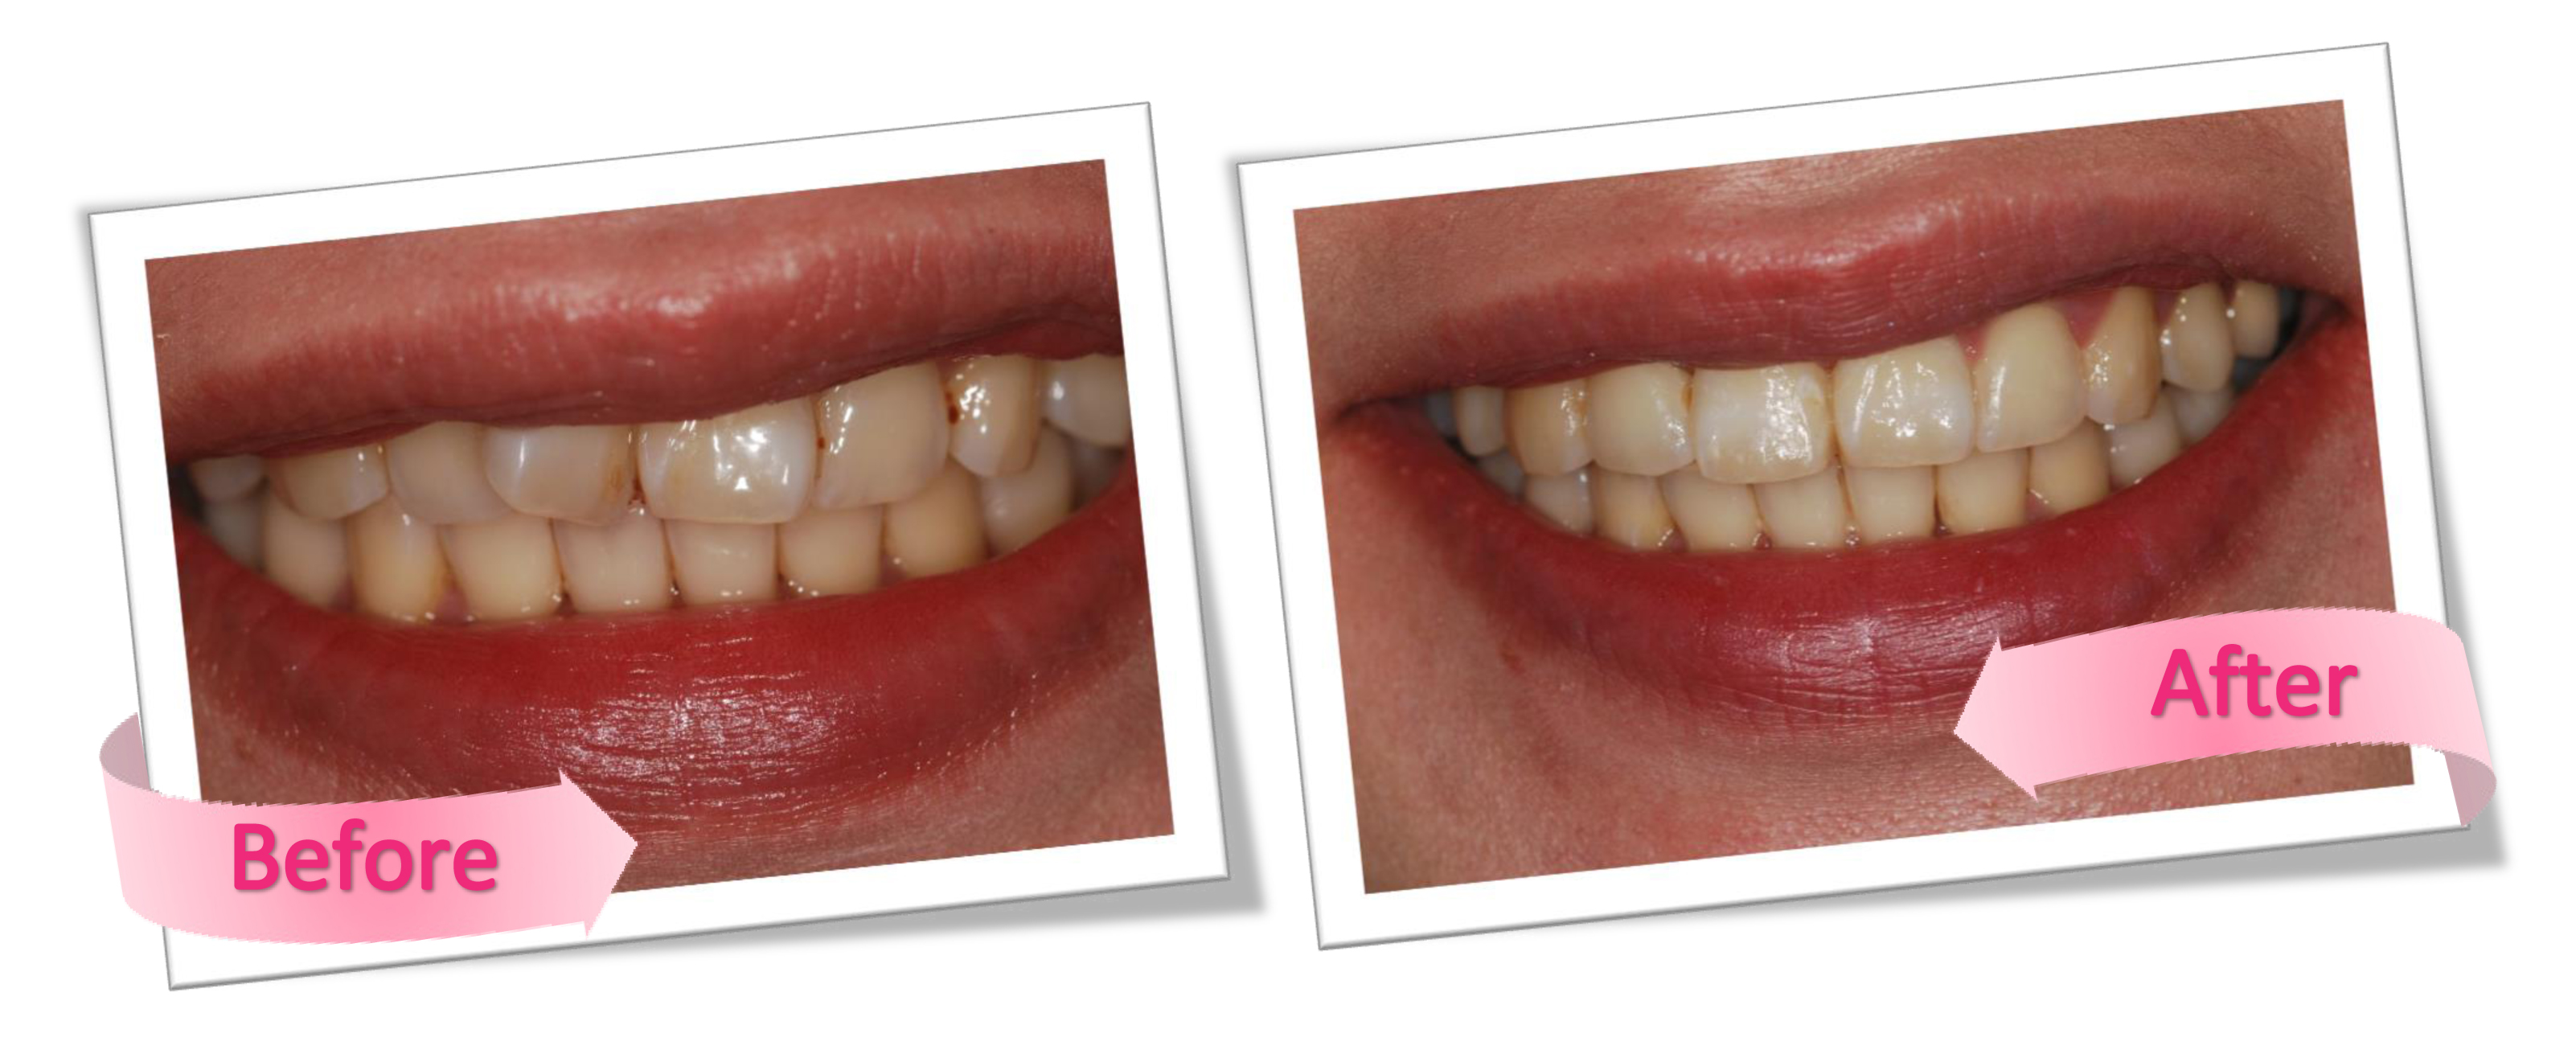 the benefits of 6 months braces in Loughborough